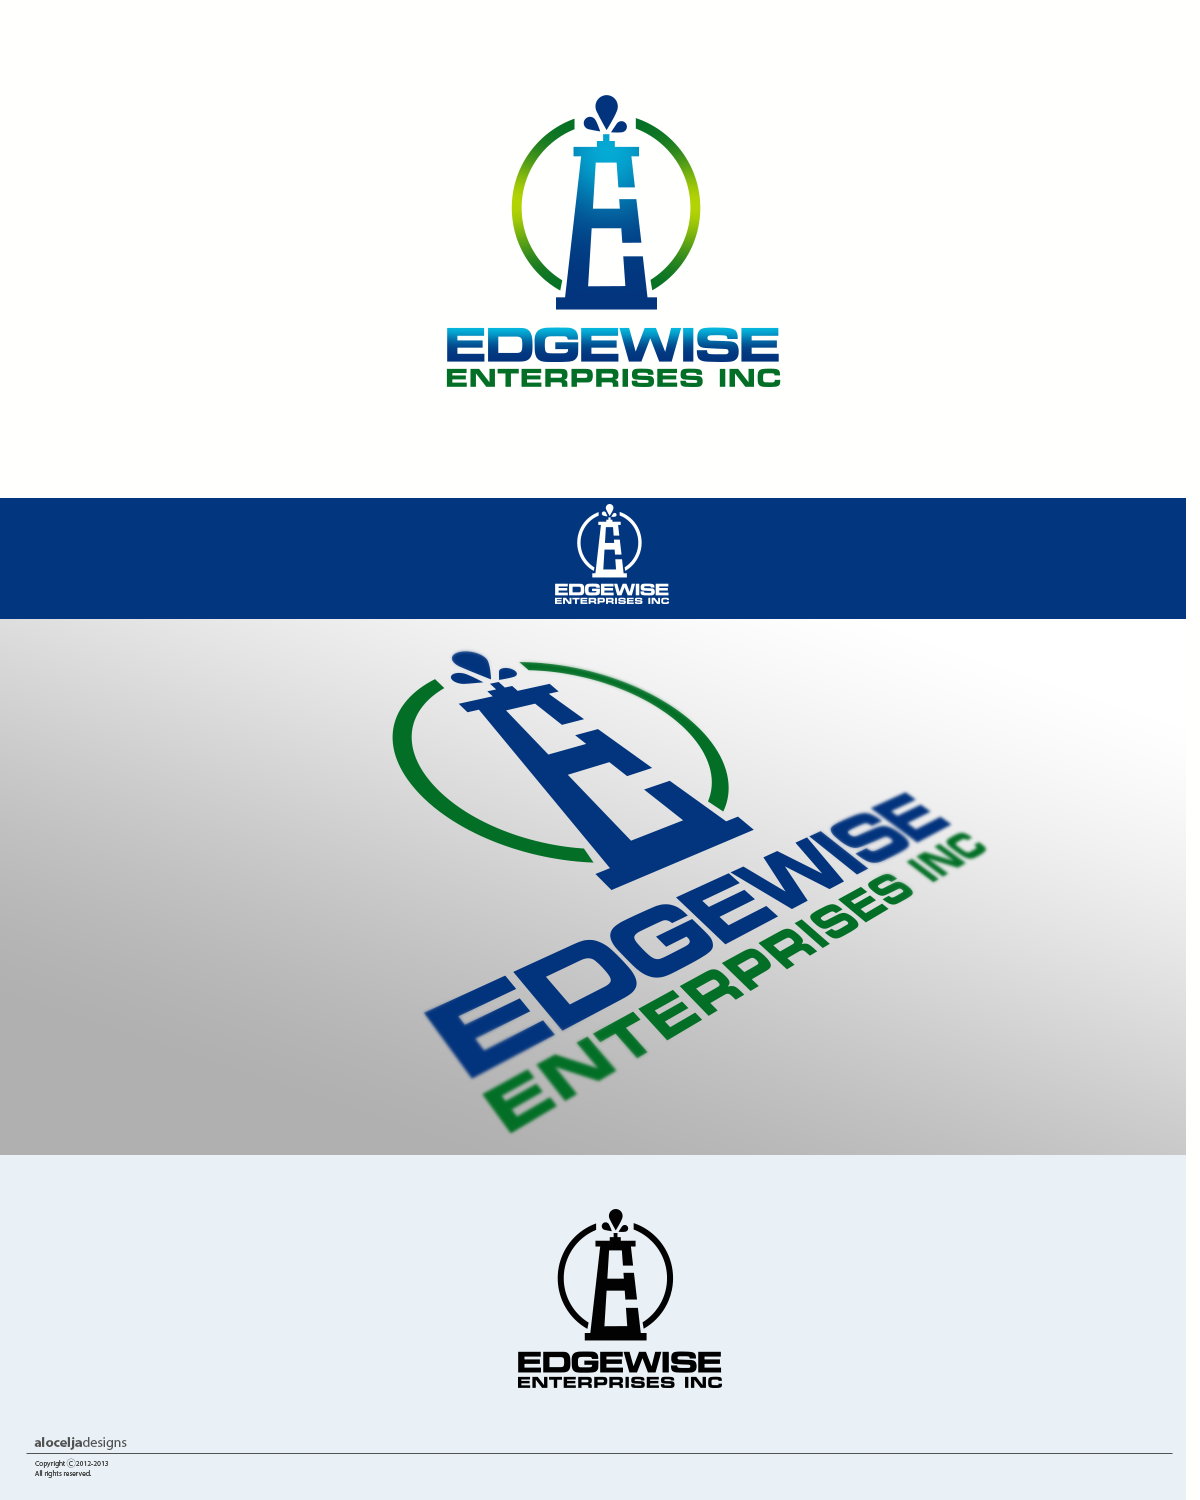 Logo Design by alocelja - Entry No. 46 in the Logo Design Contest New Logo Design for Edgewise Enterprises Inc..